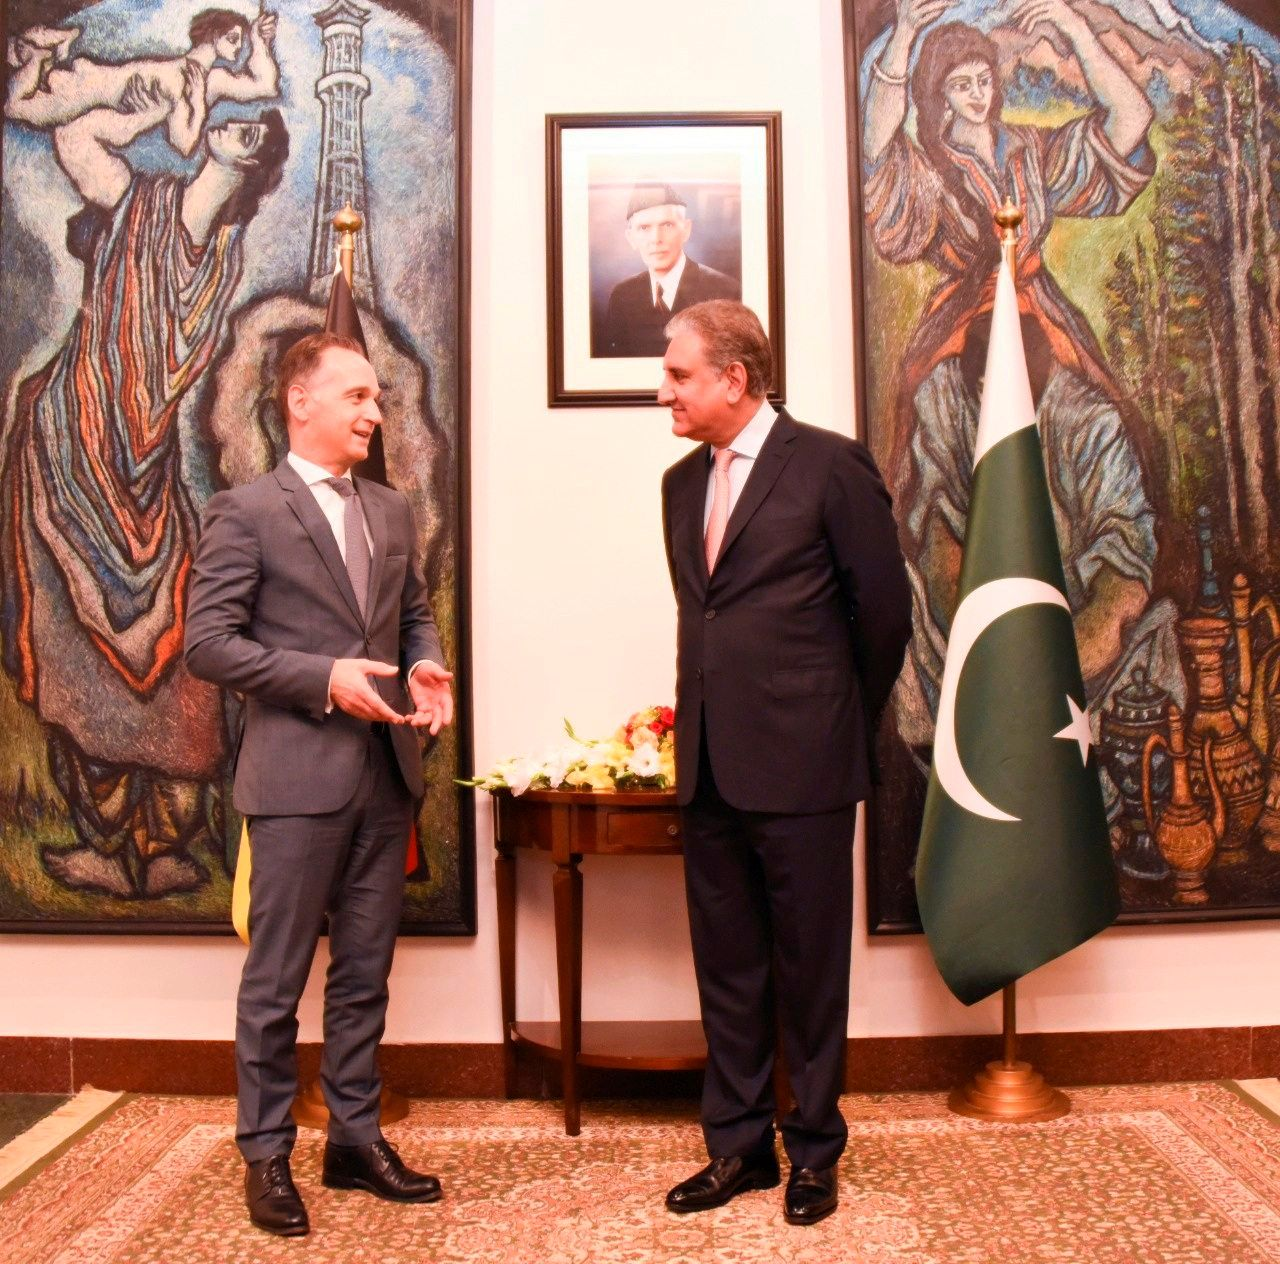 Pakistan's Foreign Minister Shah Mahmood Qureshi welcomes his German counterpart Heiko Maas upon his arrival at the Ministry of Foreign Affairs (MoFA) office, Islamabad